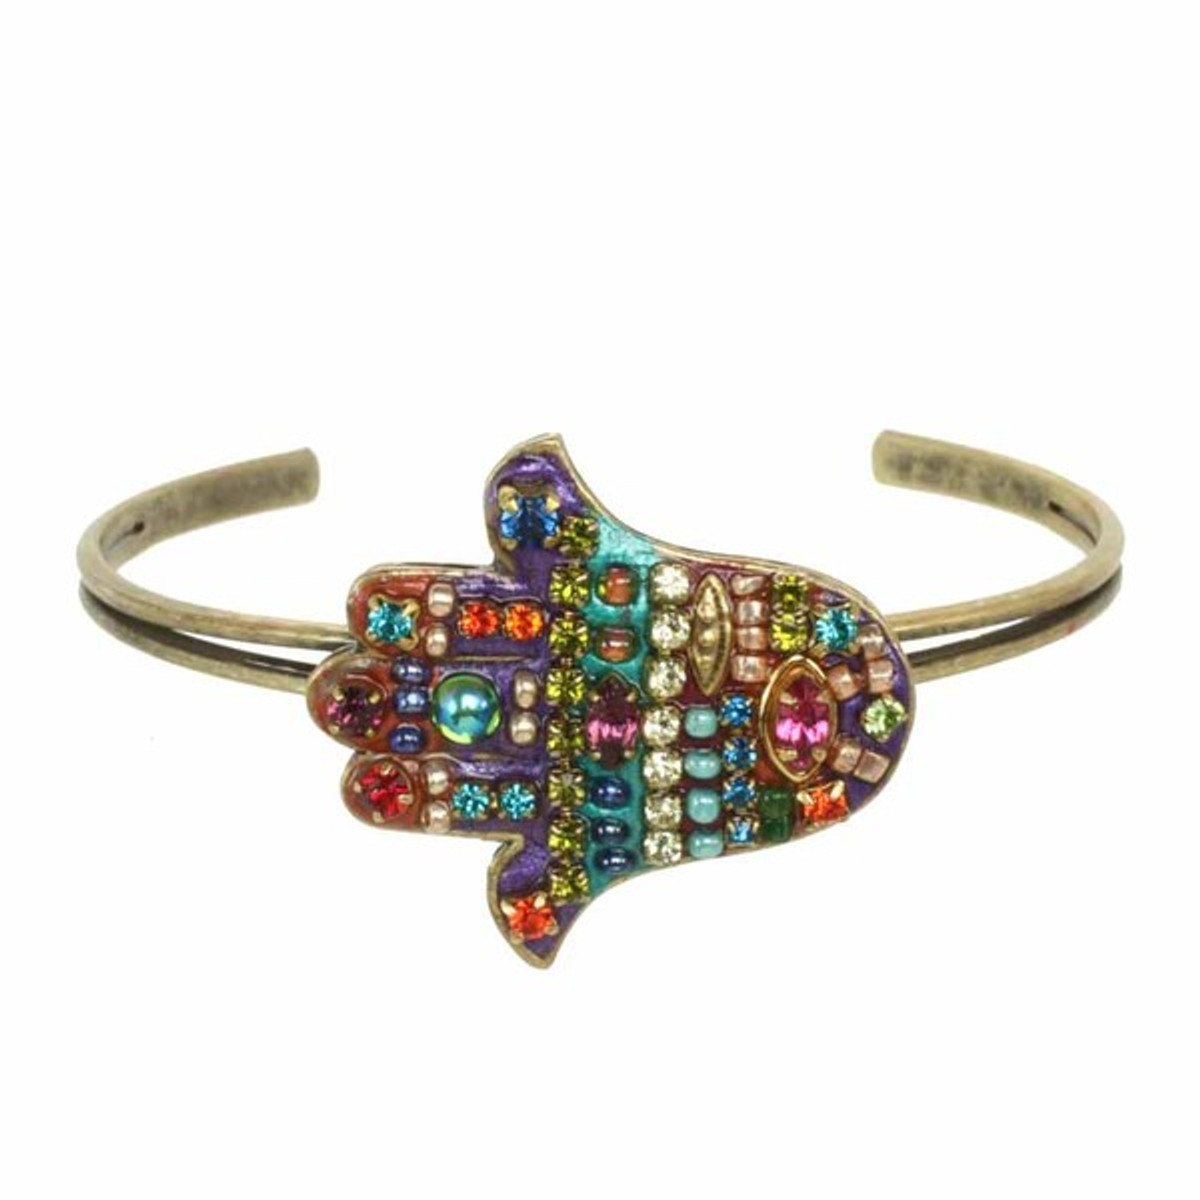 Adjustable Hamsa Cuff Bracelet by Michal Golan